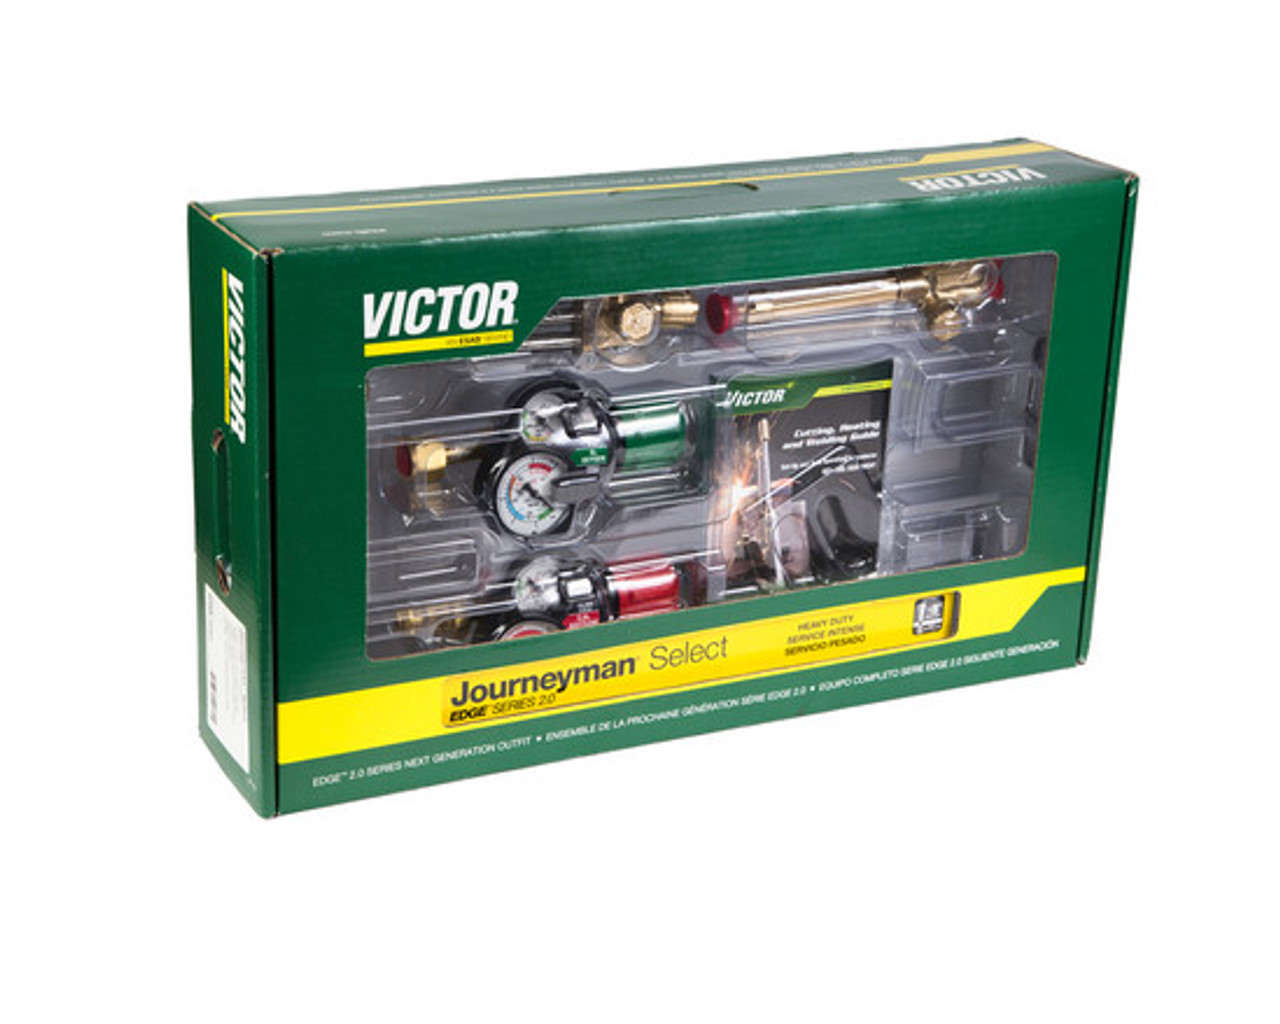 Victor 0384-2081 Journeyman Select Edge 2 0 540/510, 90° Plus Outfit  (Acetylene)